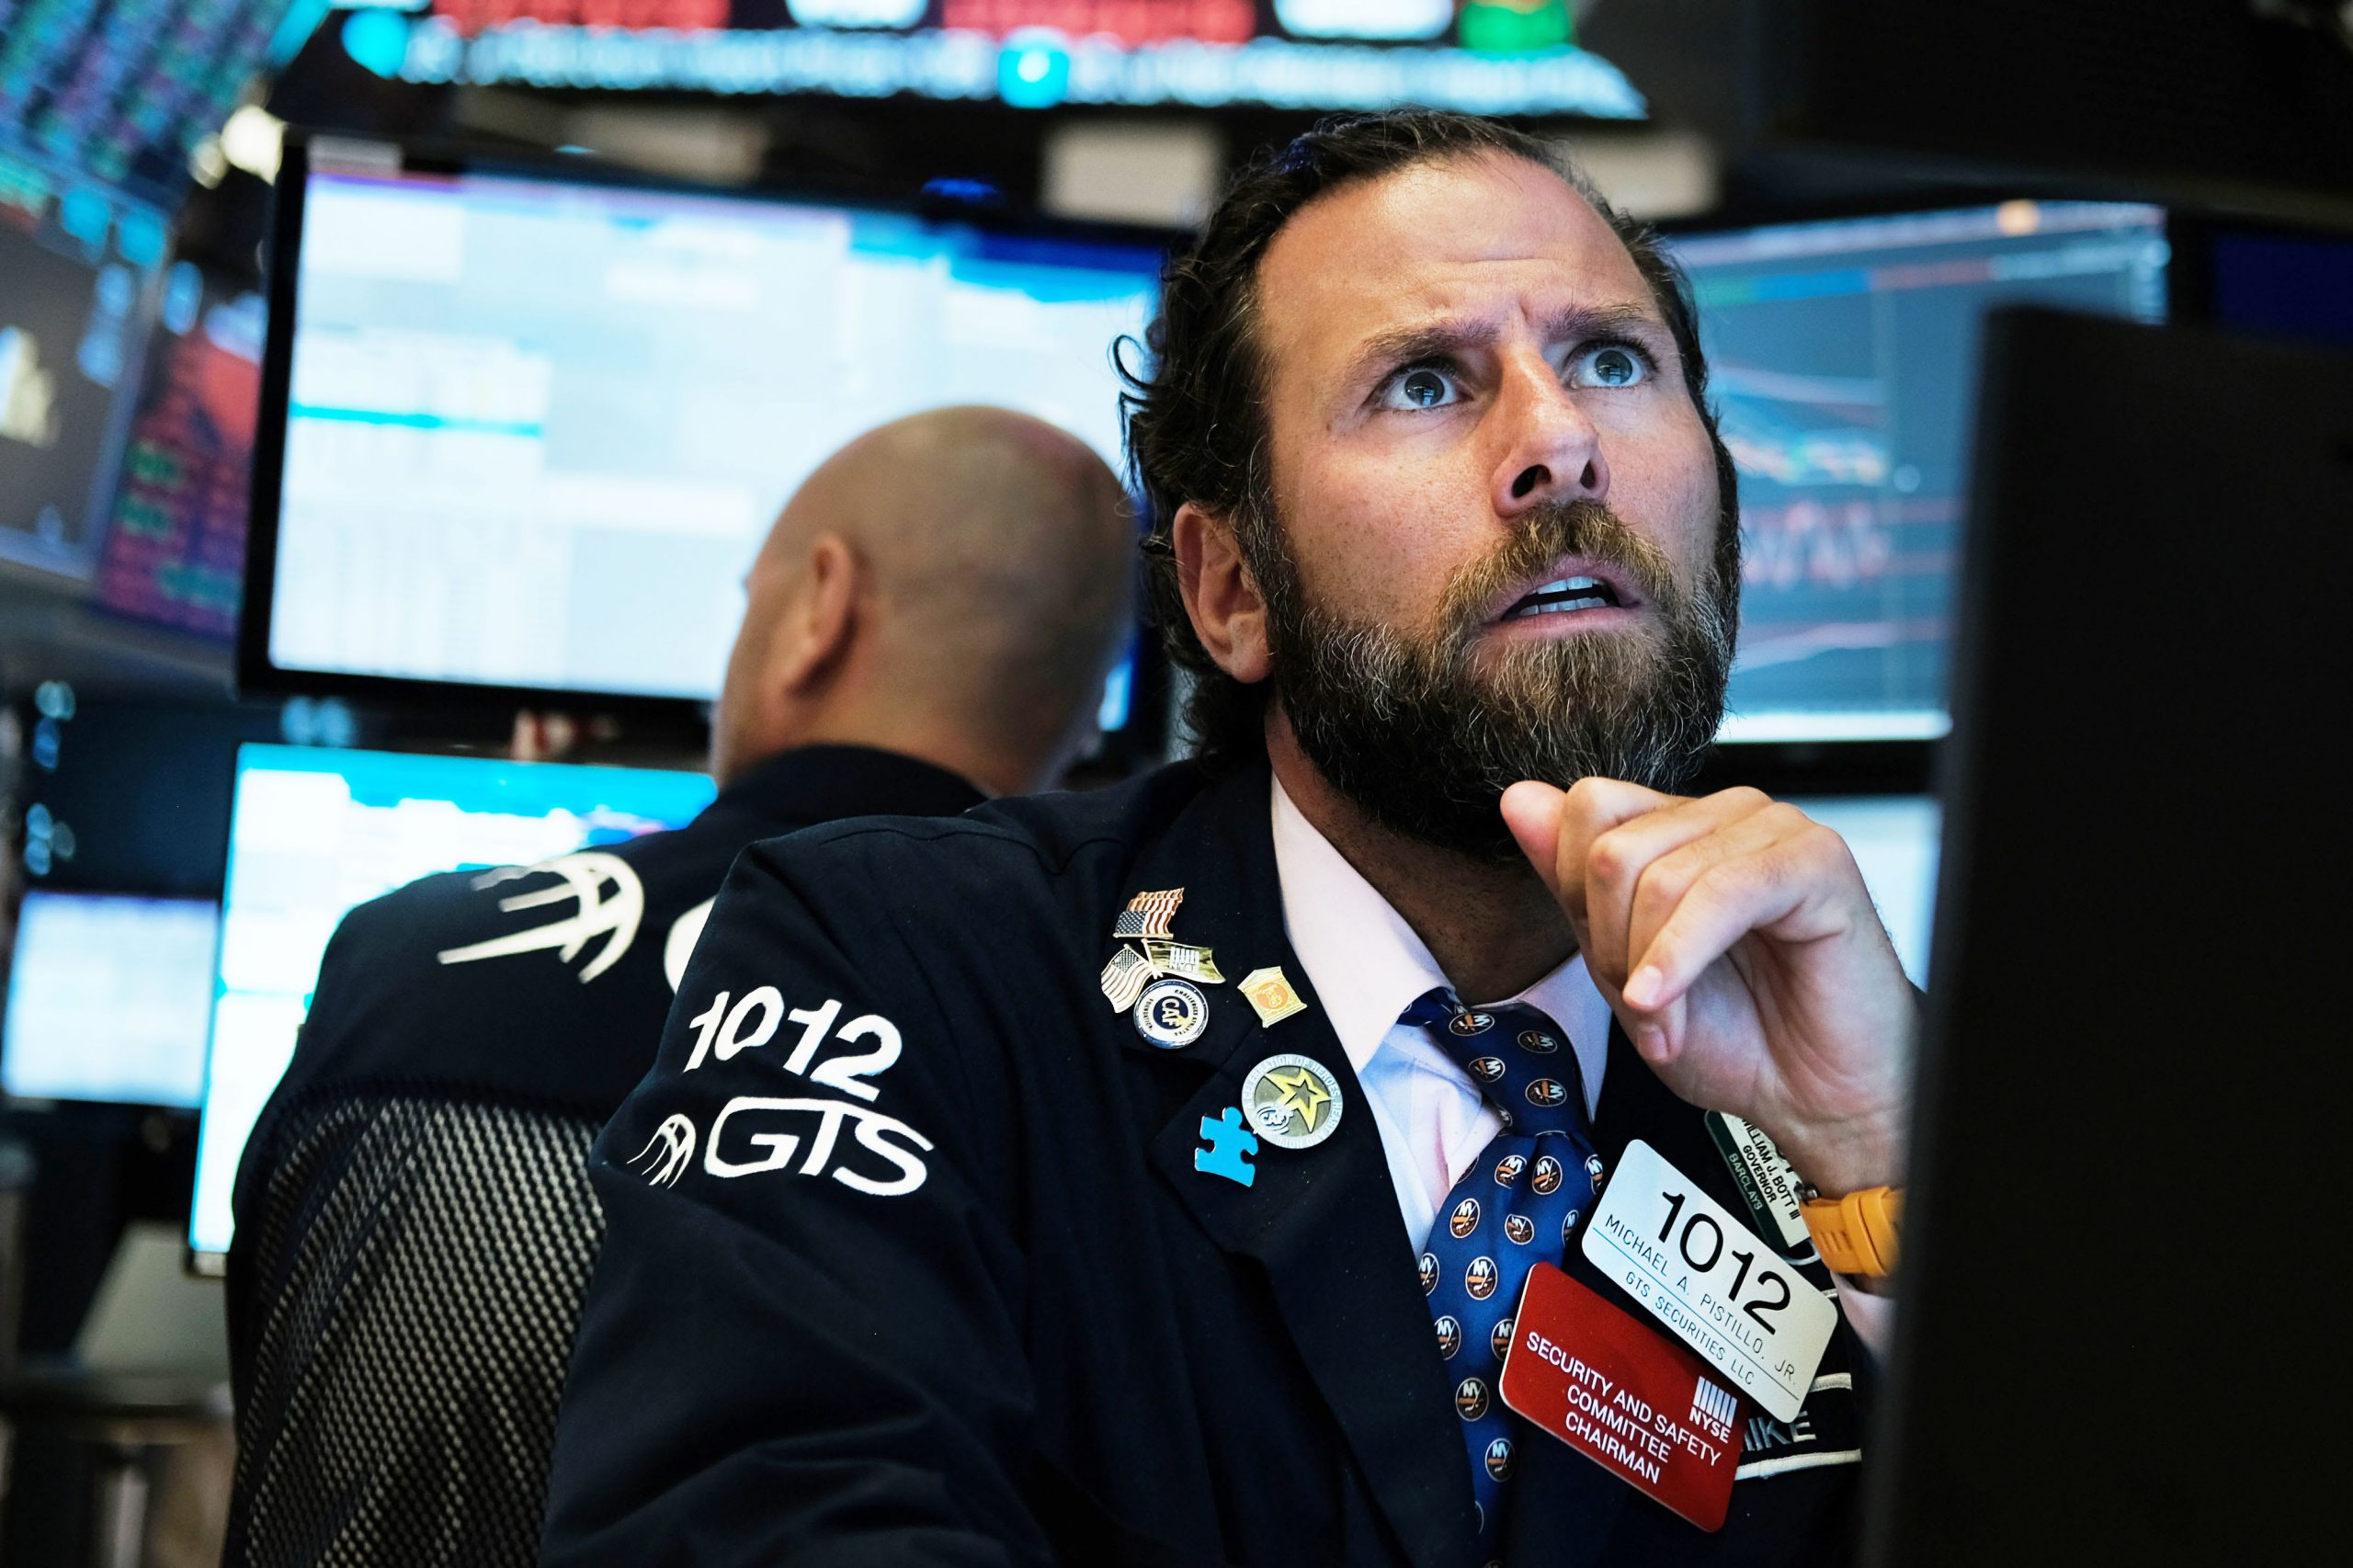 An analysis of the market sell-off: What's likely causing it and how worried you should be